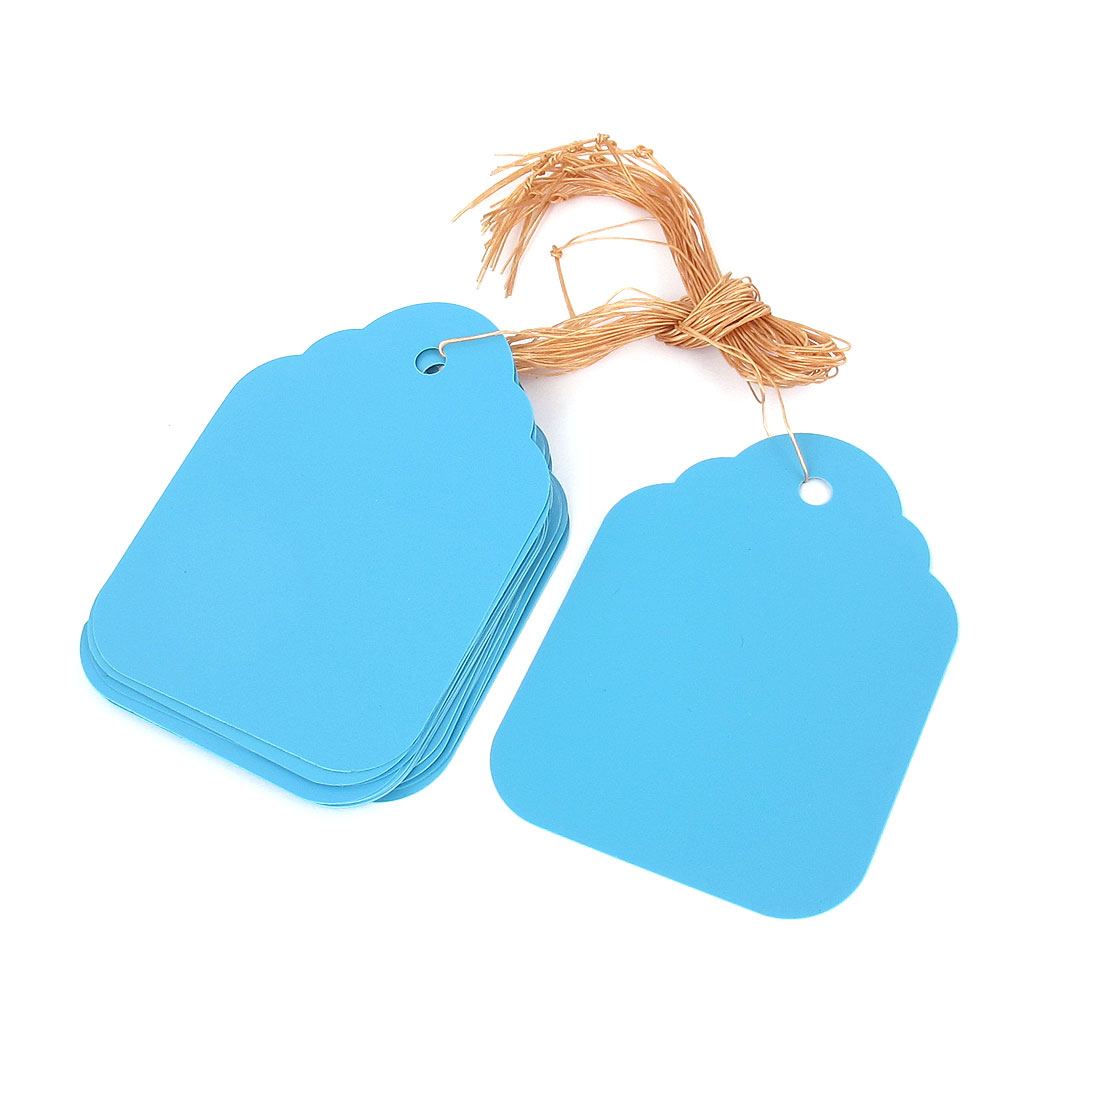 20pcs Plastic Nursery Garden Plant Seeding Hanging Name Tag Label Marker Blue